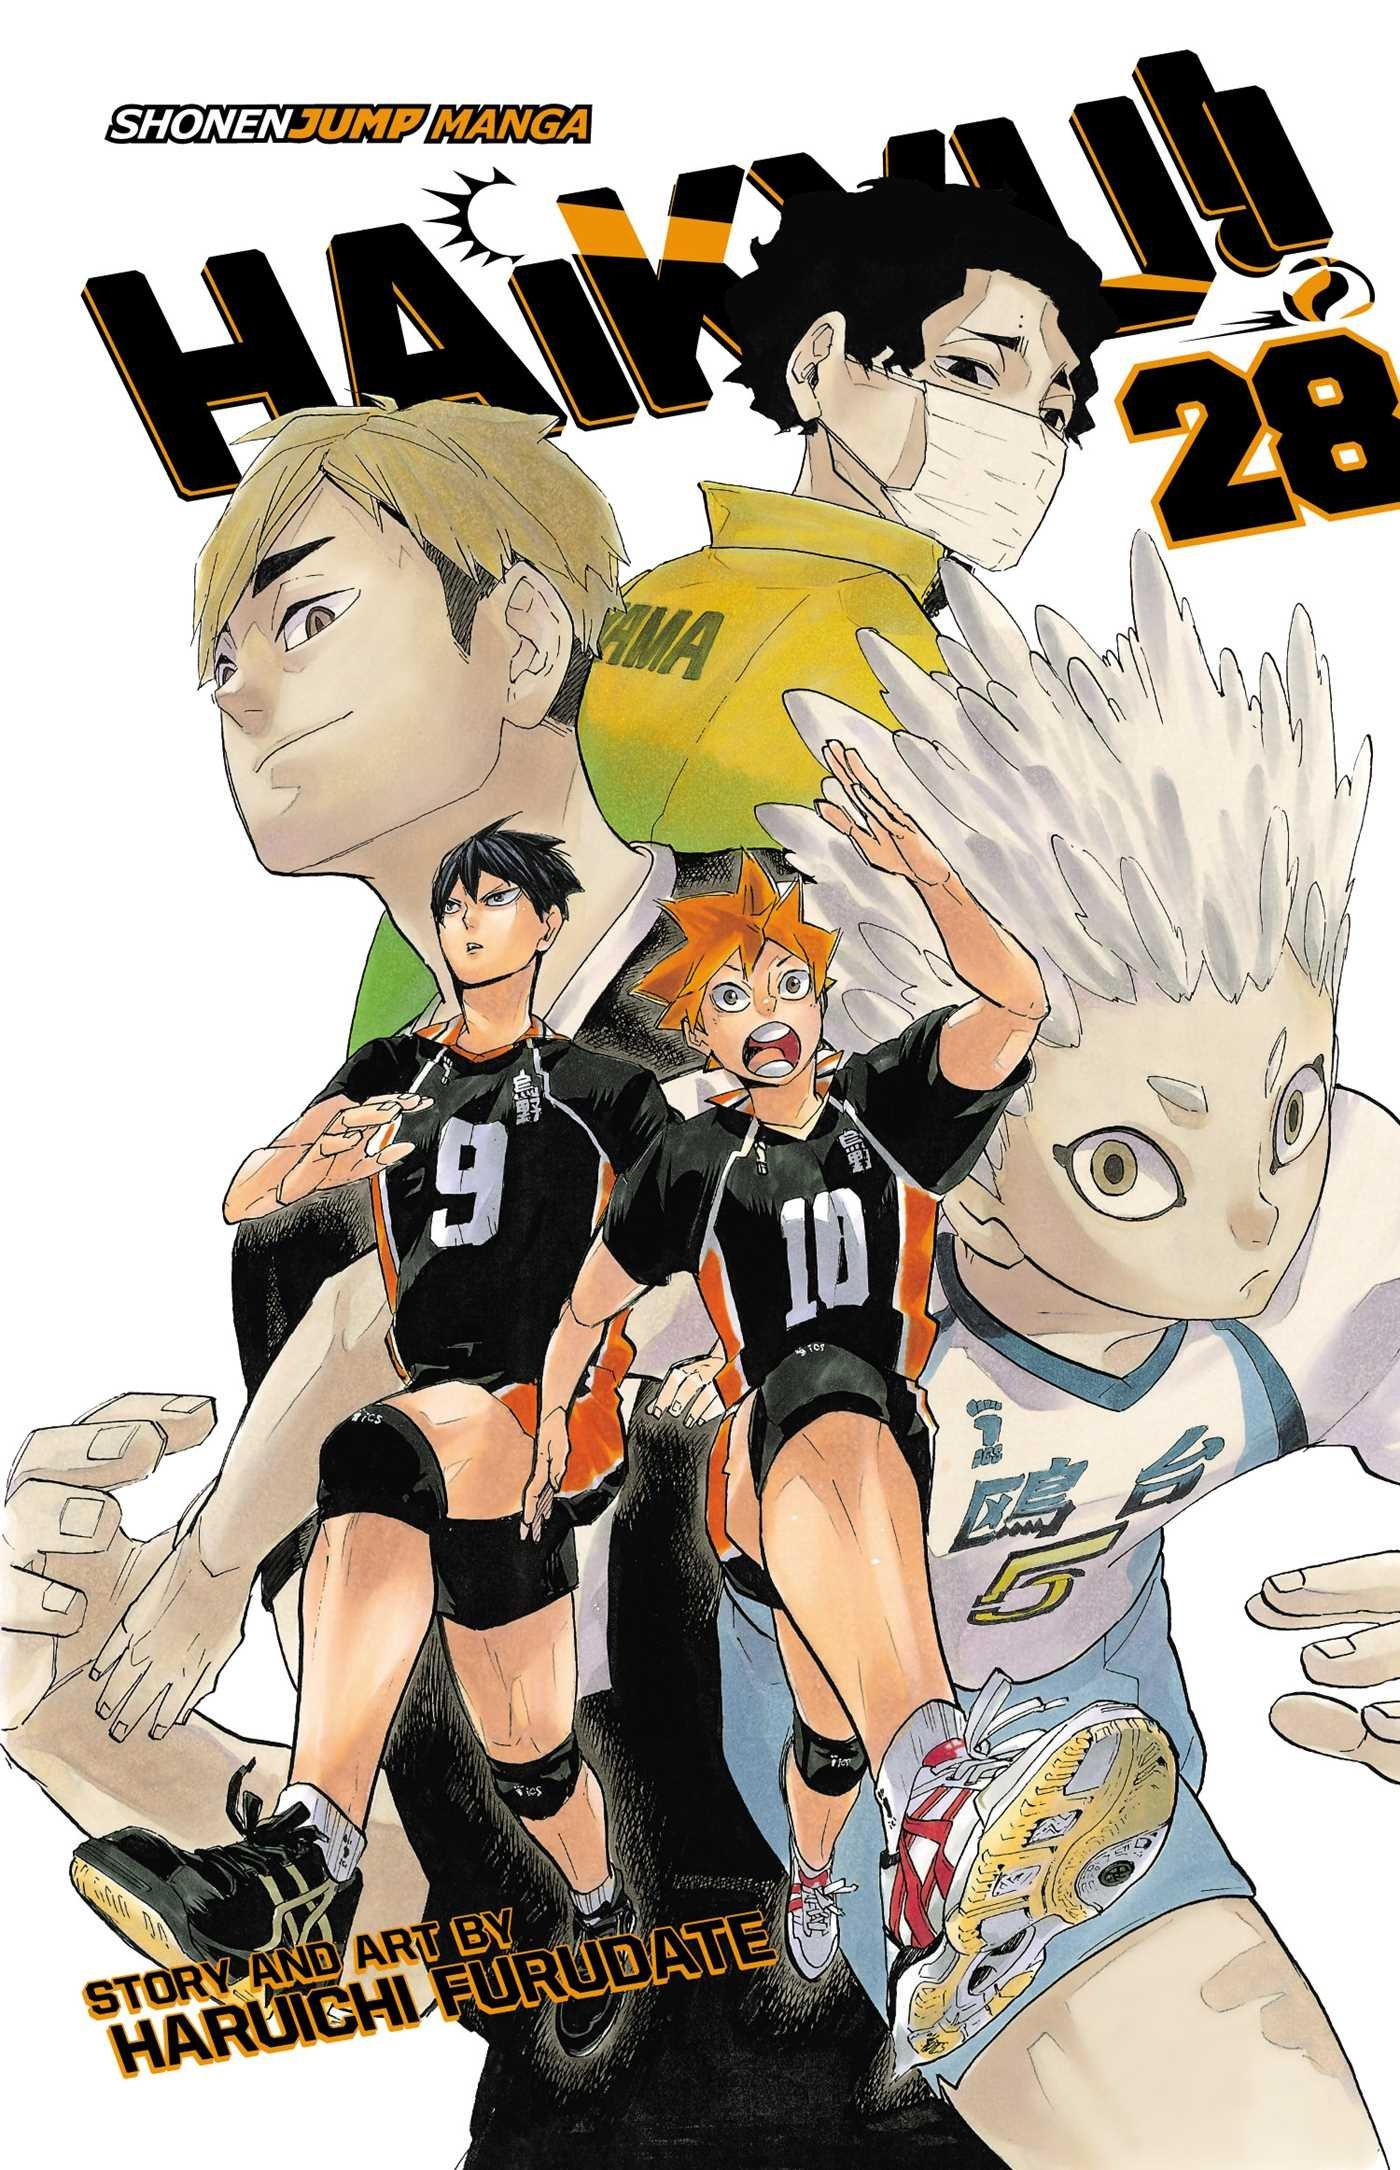 Haikyu!!, Vol. 28: Amazon.co.uk: Haruichi Furudate: Books